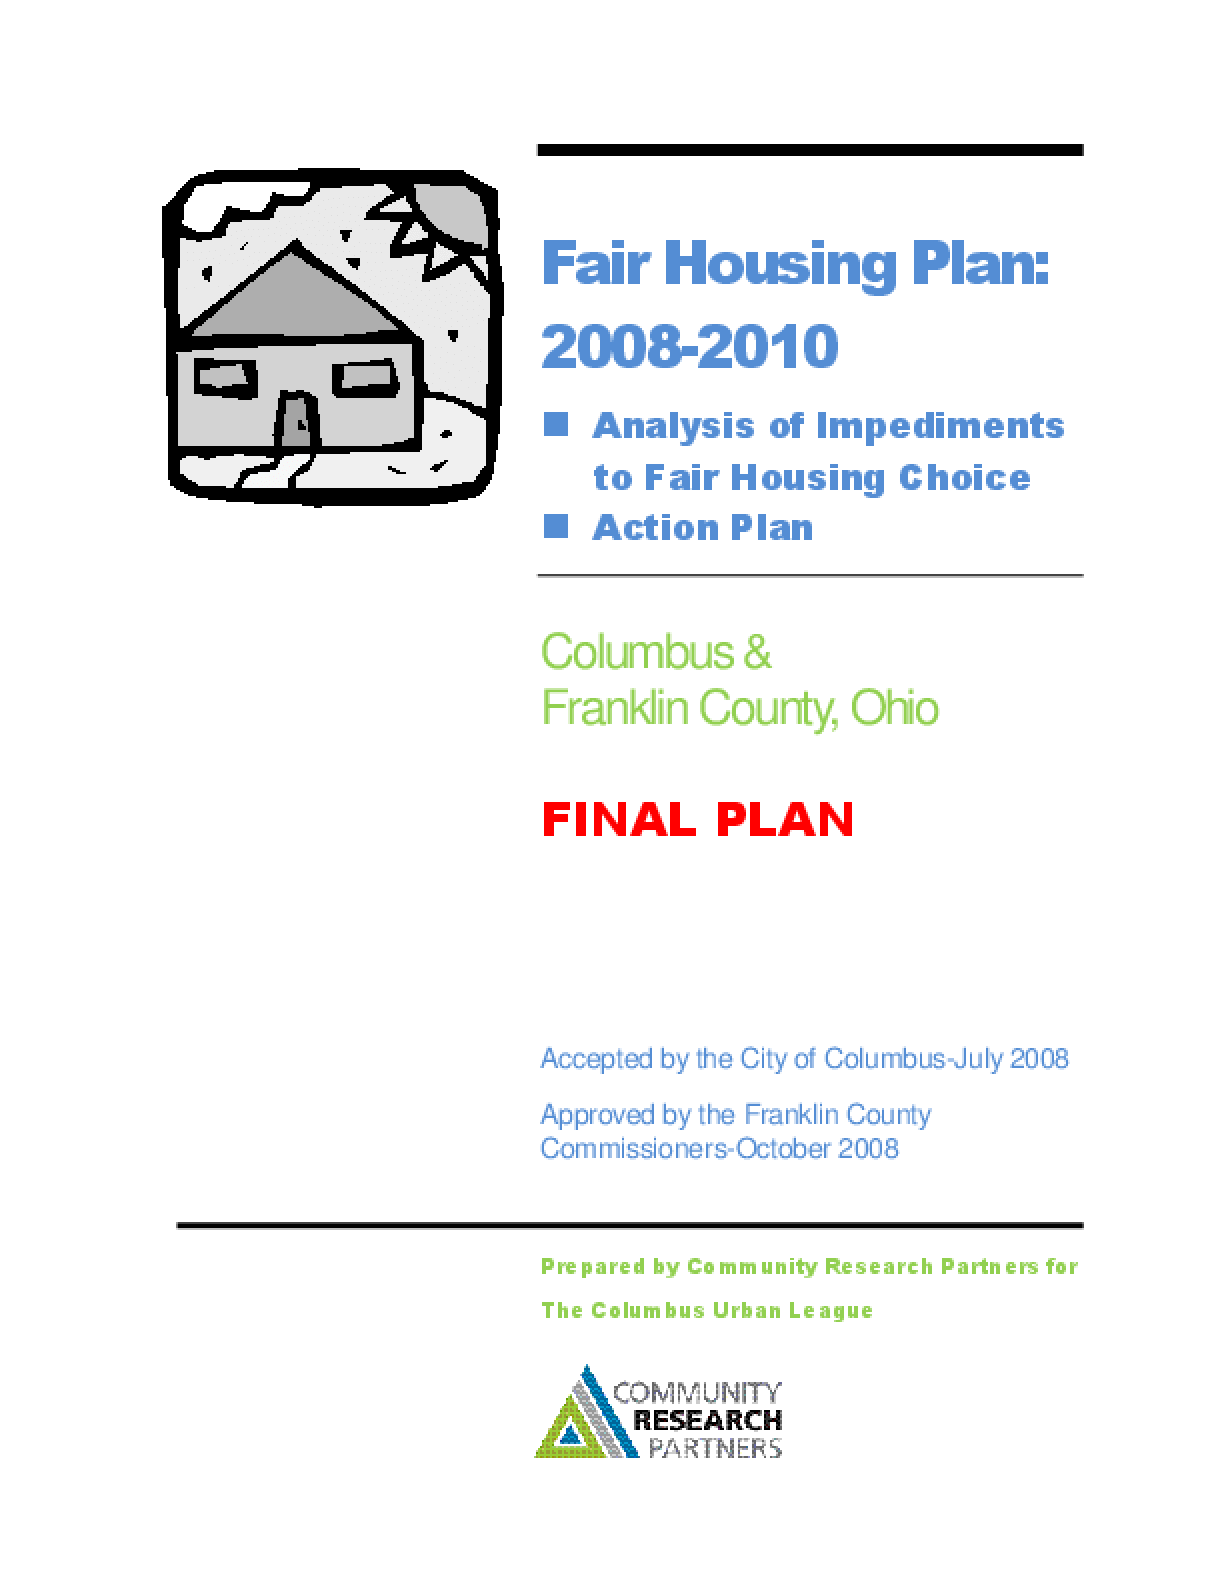 Fair Housing Plan: Columbus and Franklin County, Ohio